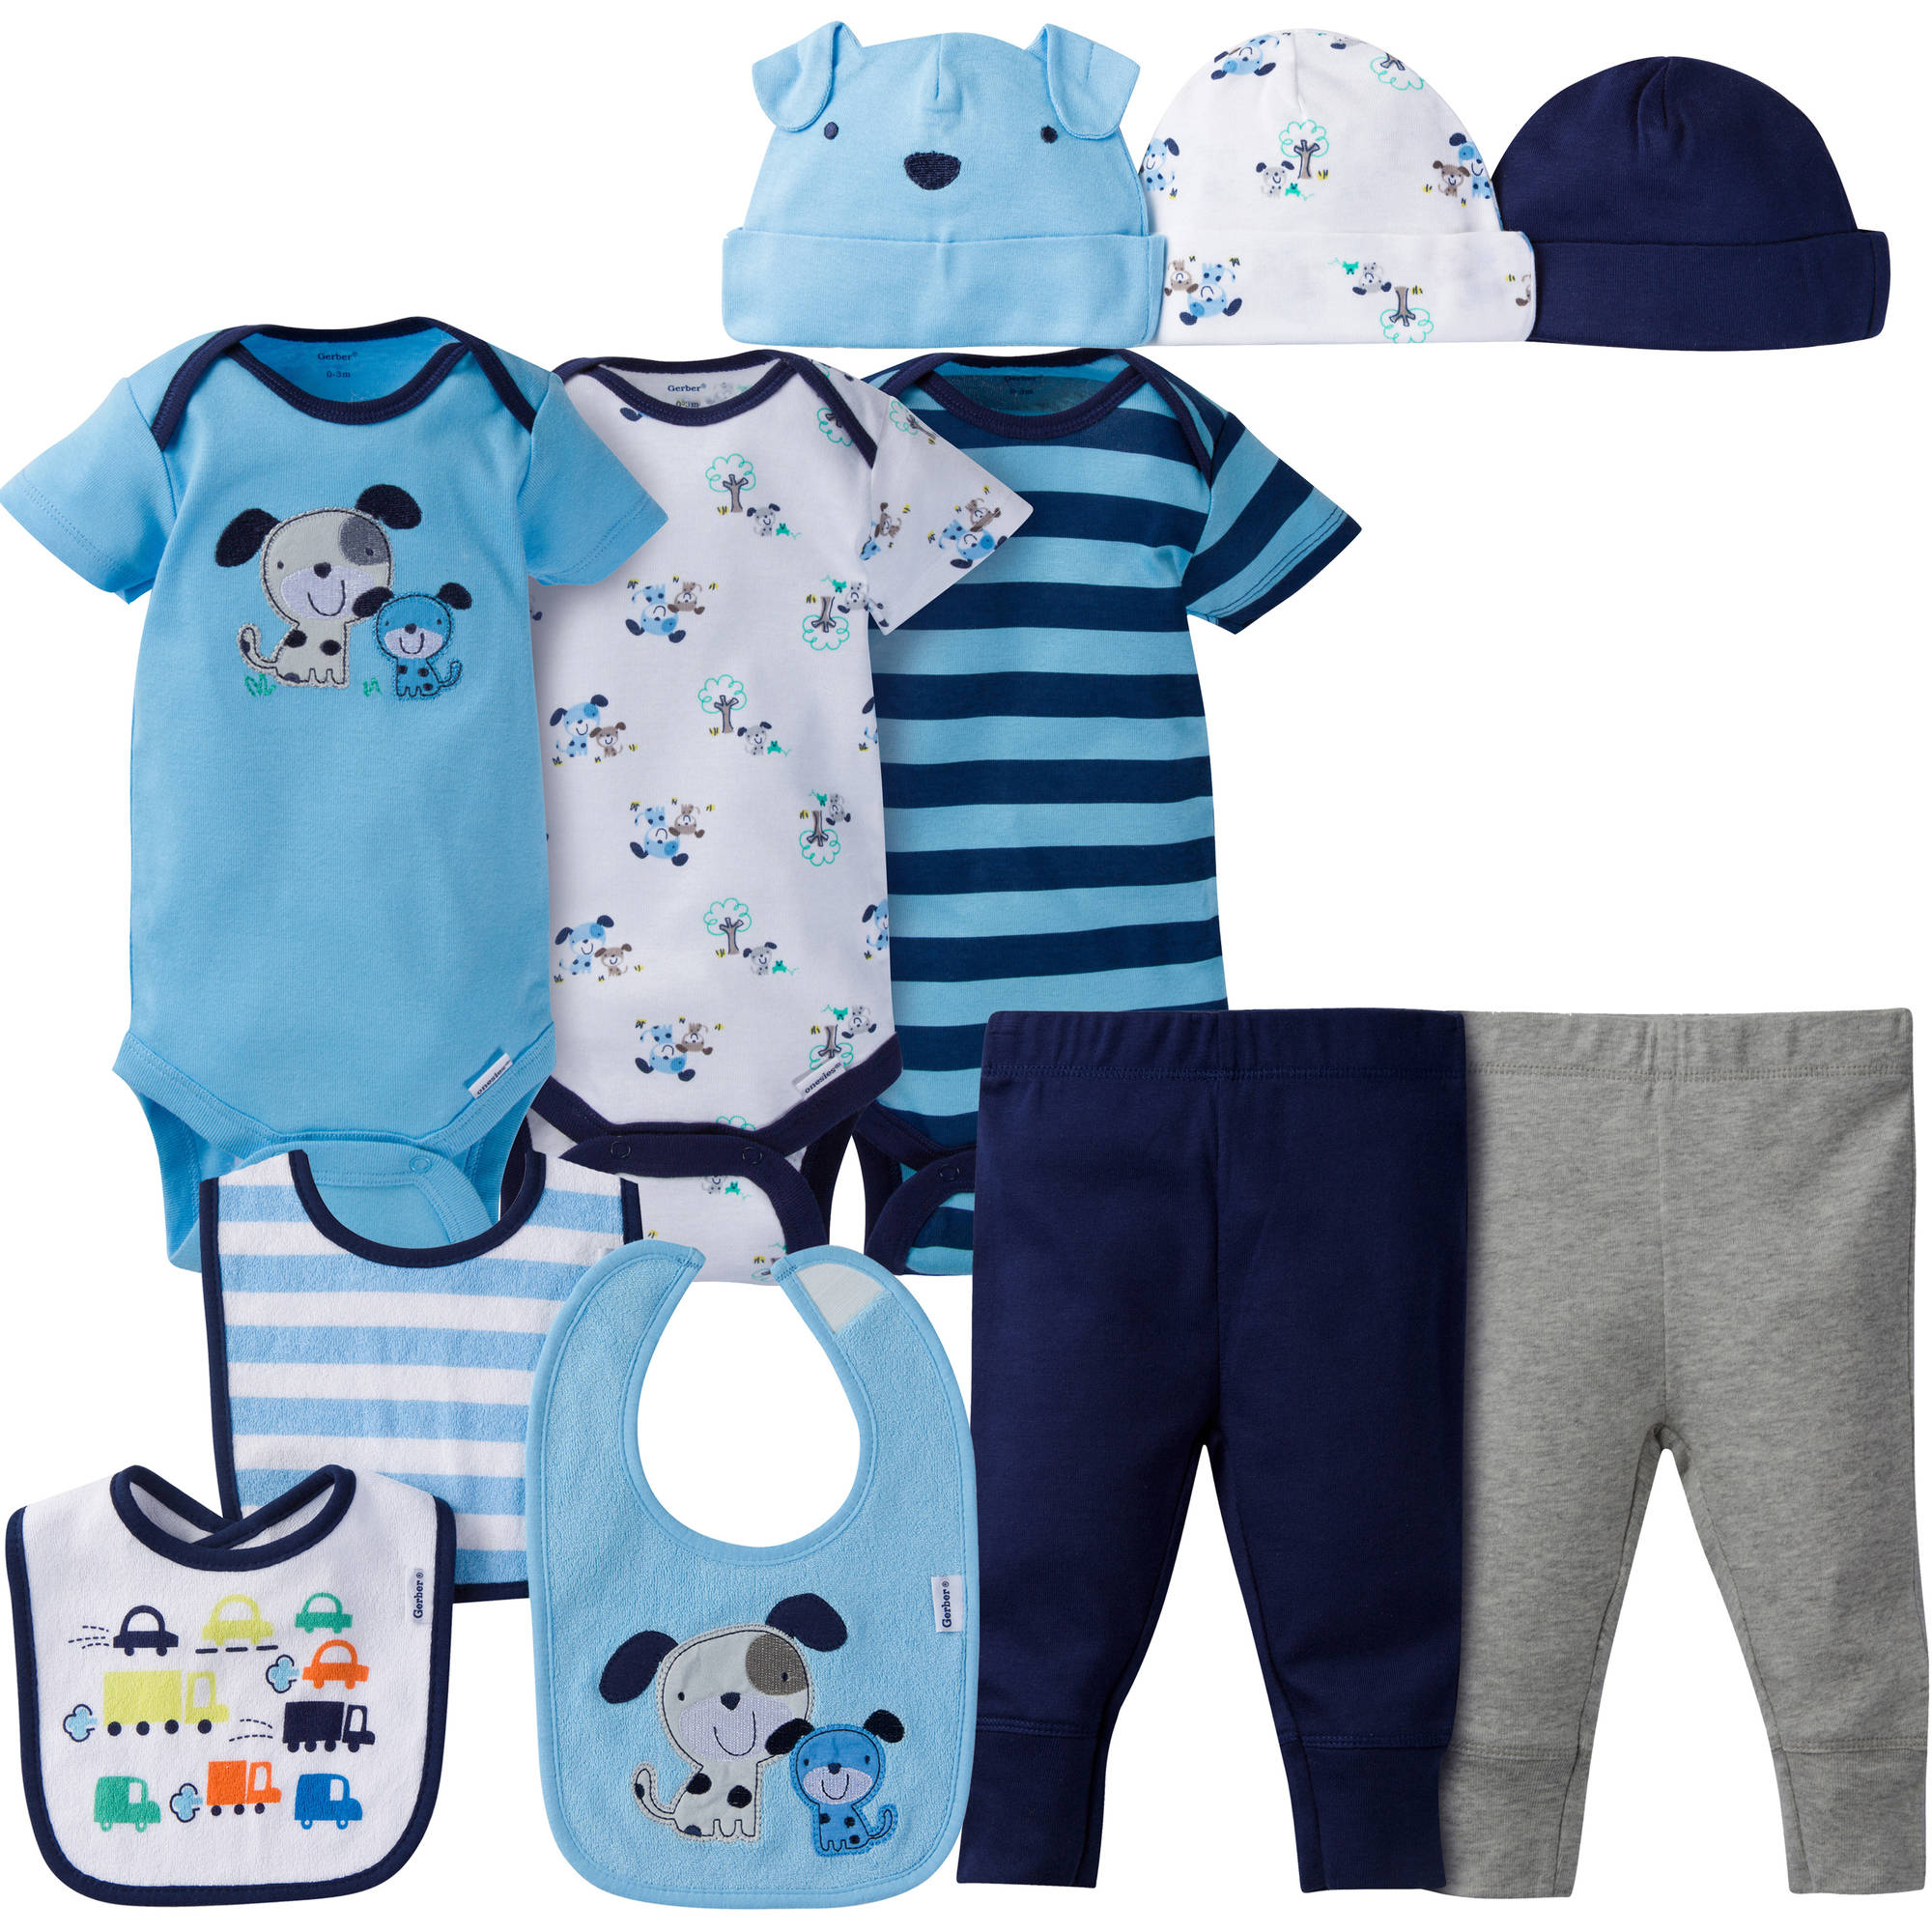 Gerber Newborn Baby Boy Perfect Baby Shower Gift Layette Set, 11-Piece